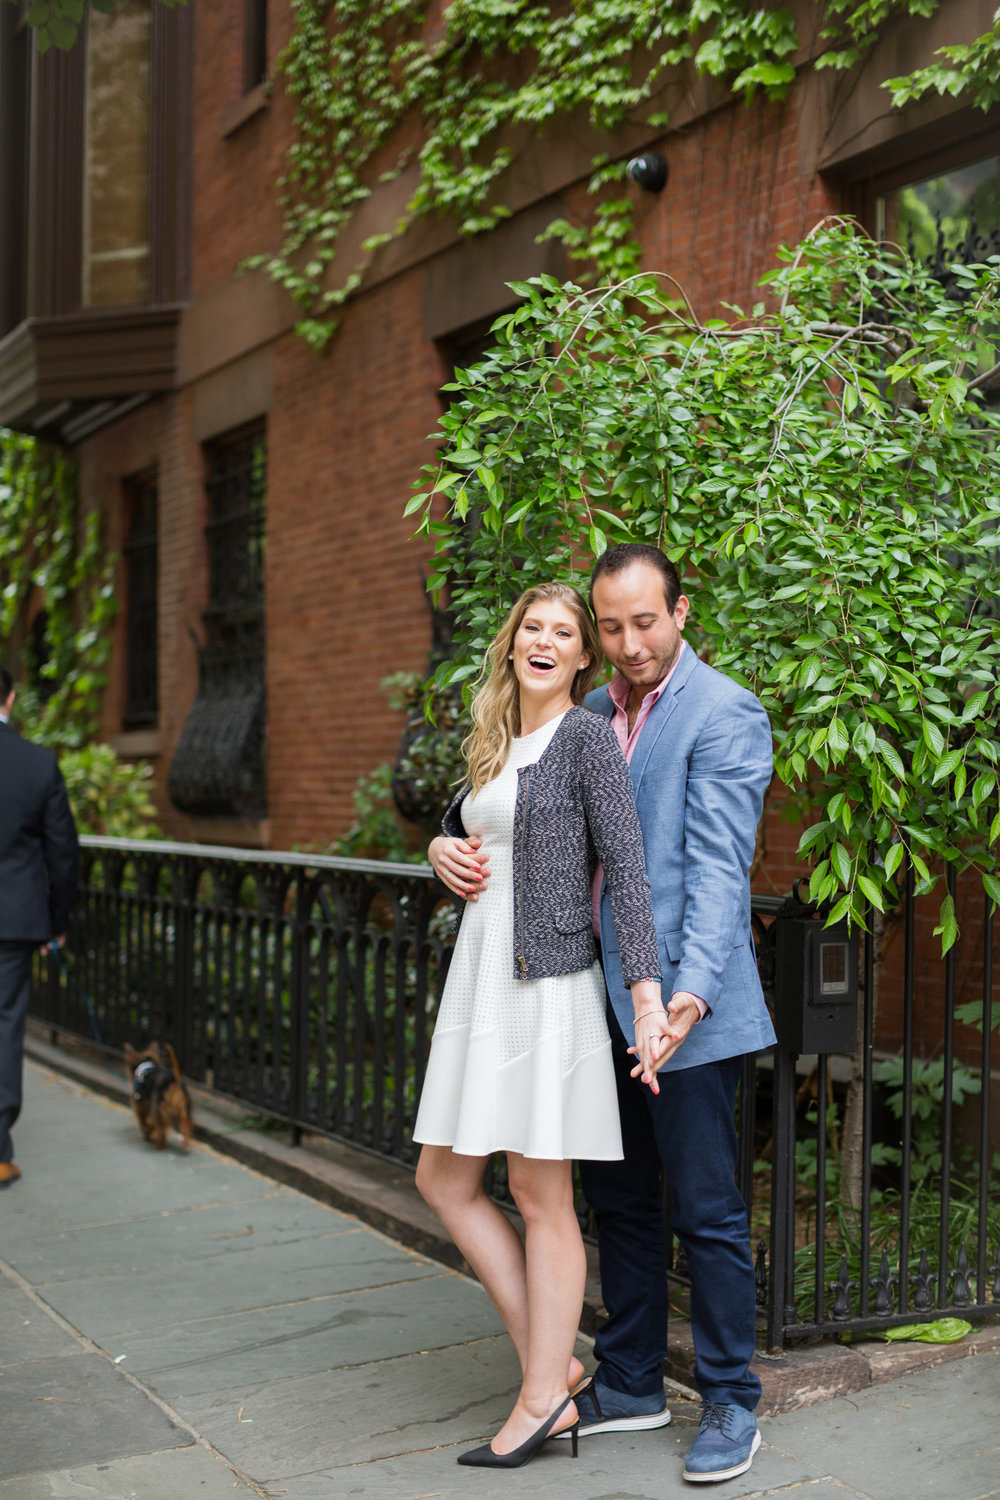 Melissa Kruse Photography - Courtney & JP Gramercy NYC Engagement Photos-142.jpg